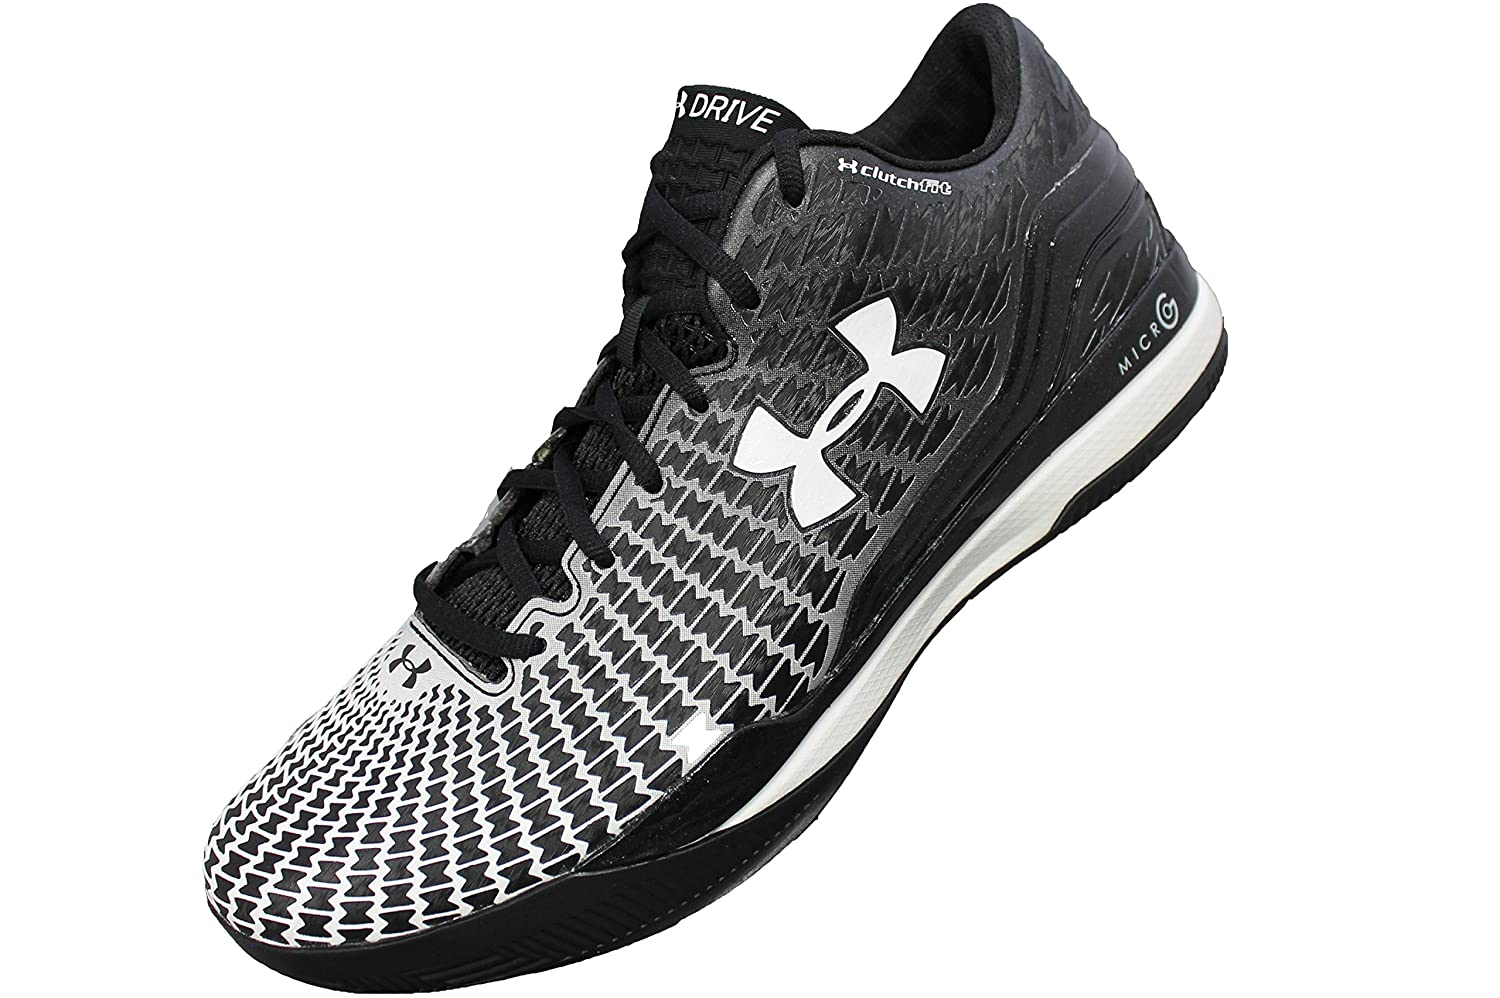 Under Armour Clutchfit Drive Trail Running Shoes